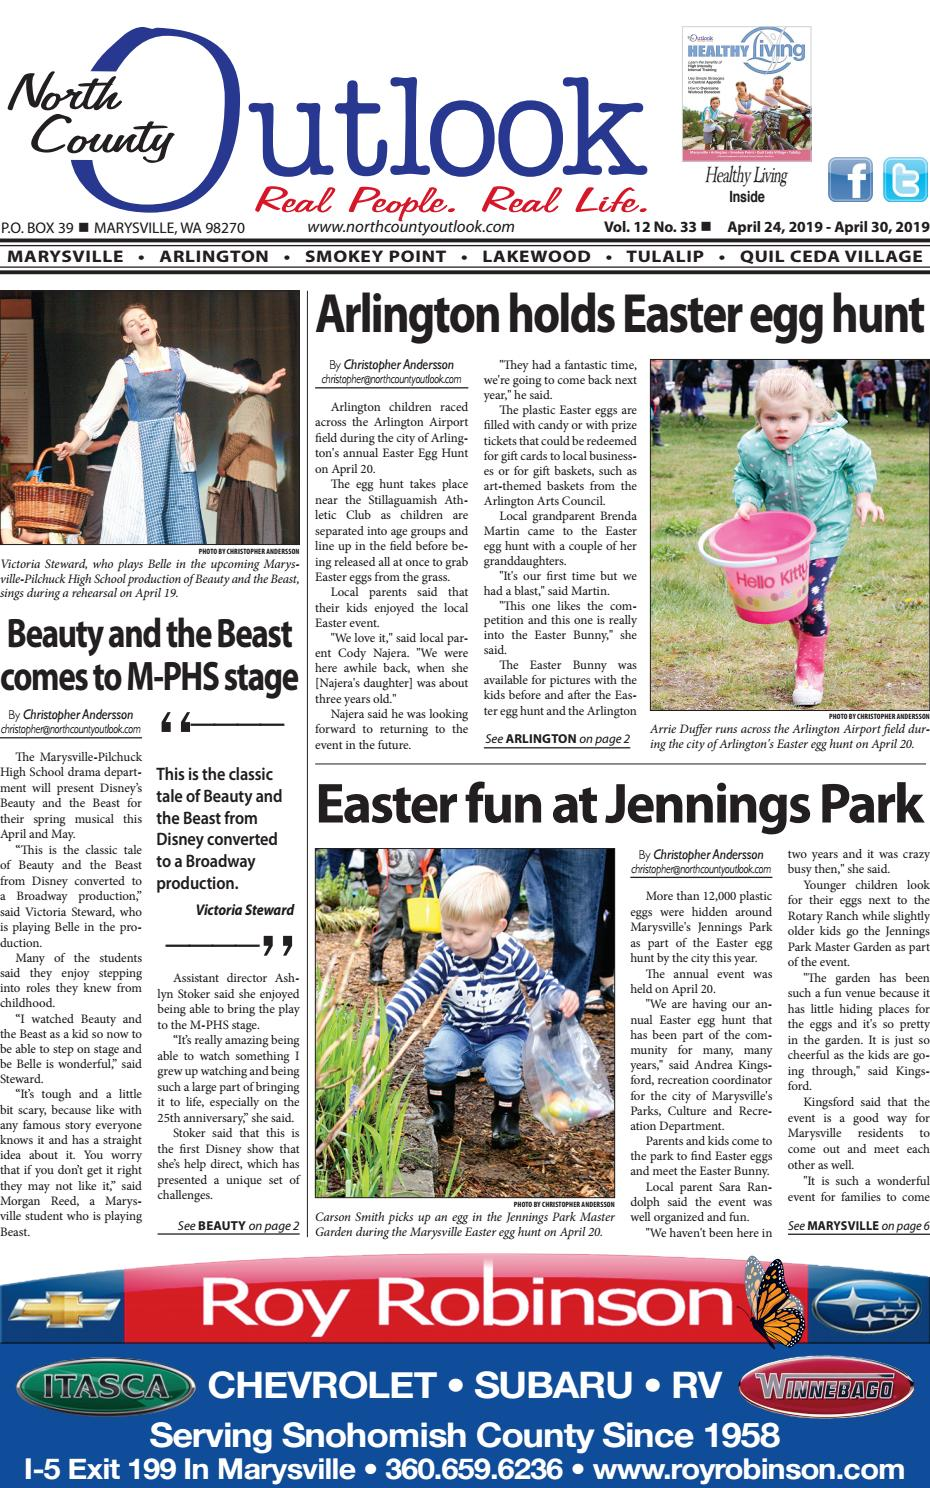 April 24, 2019 North County Outlook by The North County